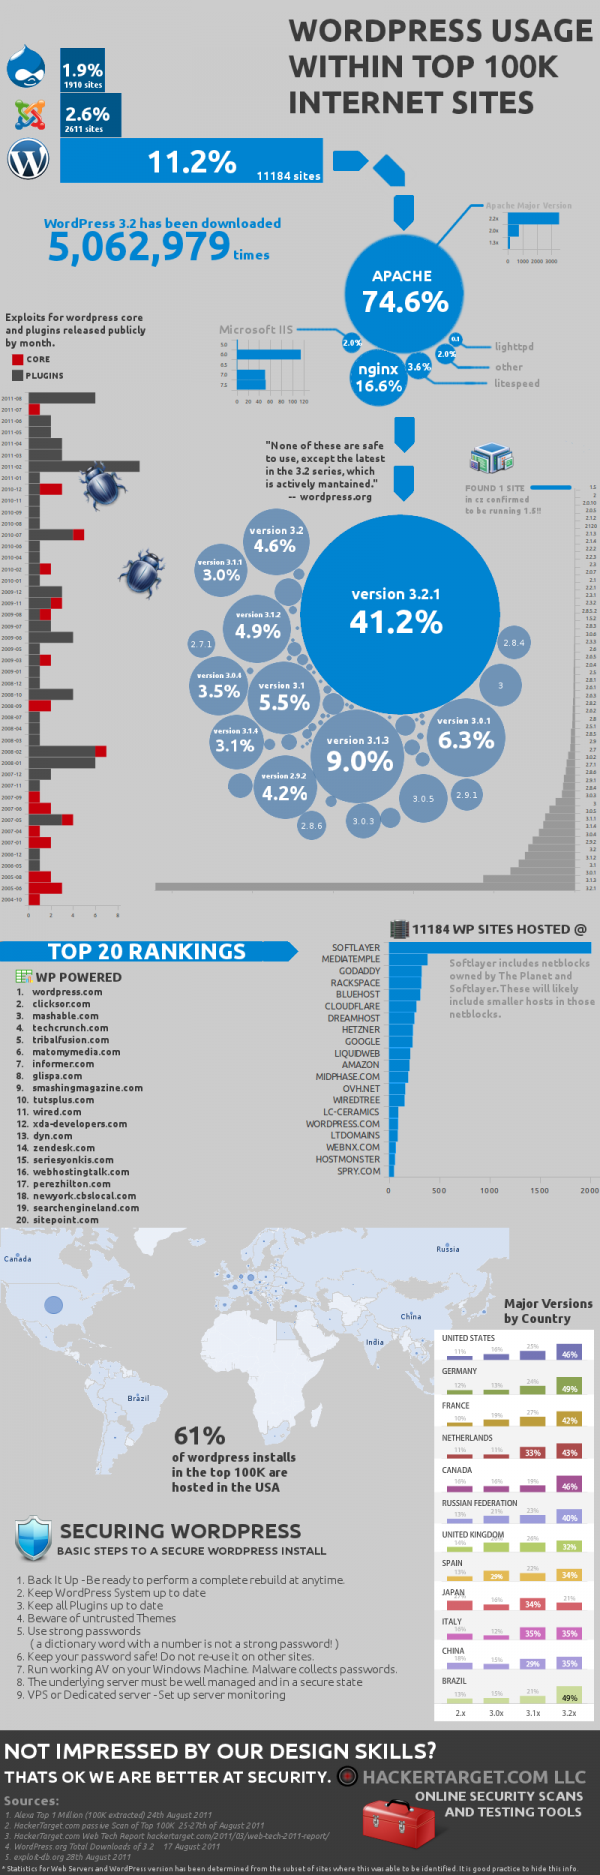 infographic-on-social-media-21